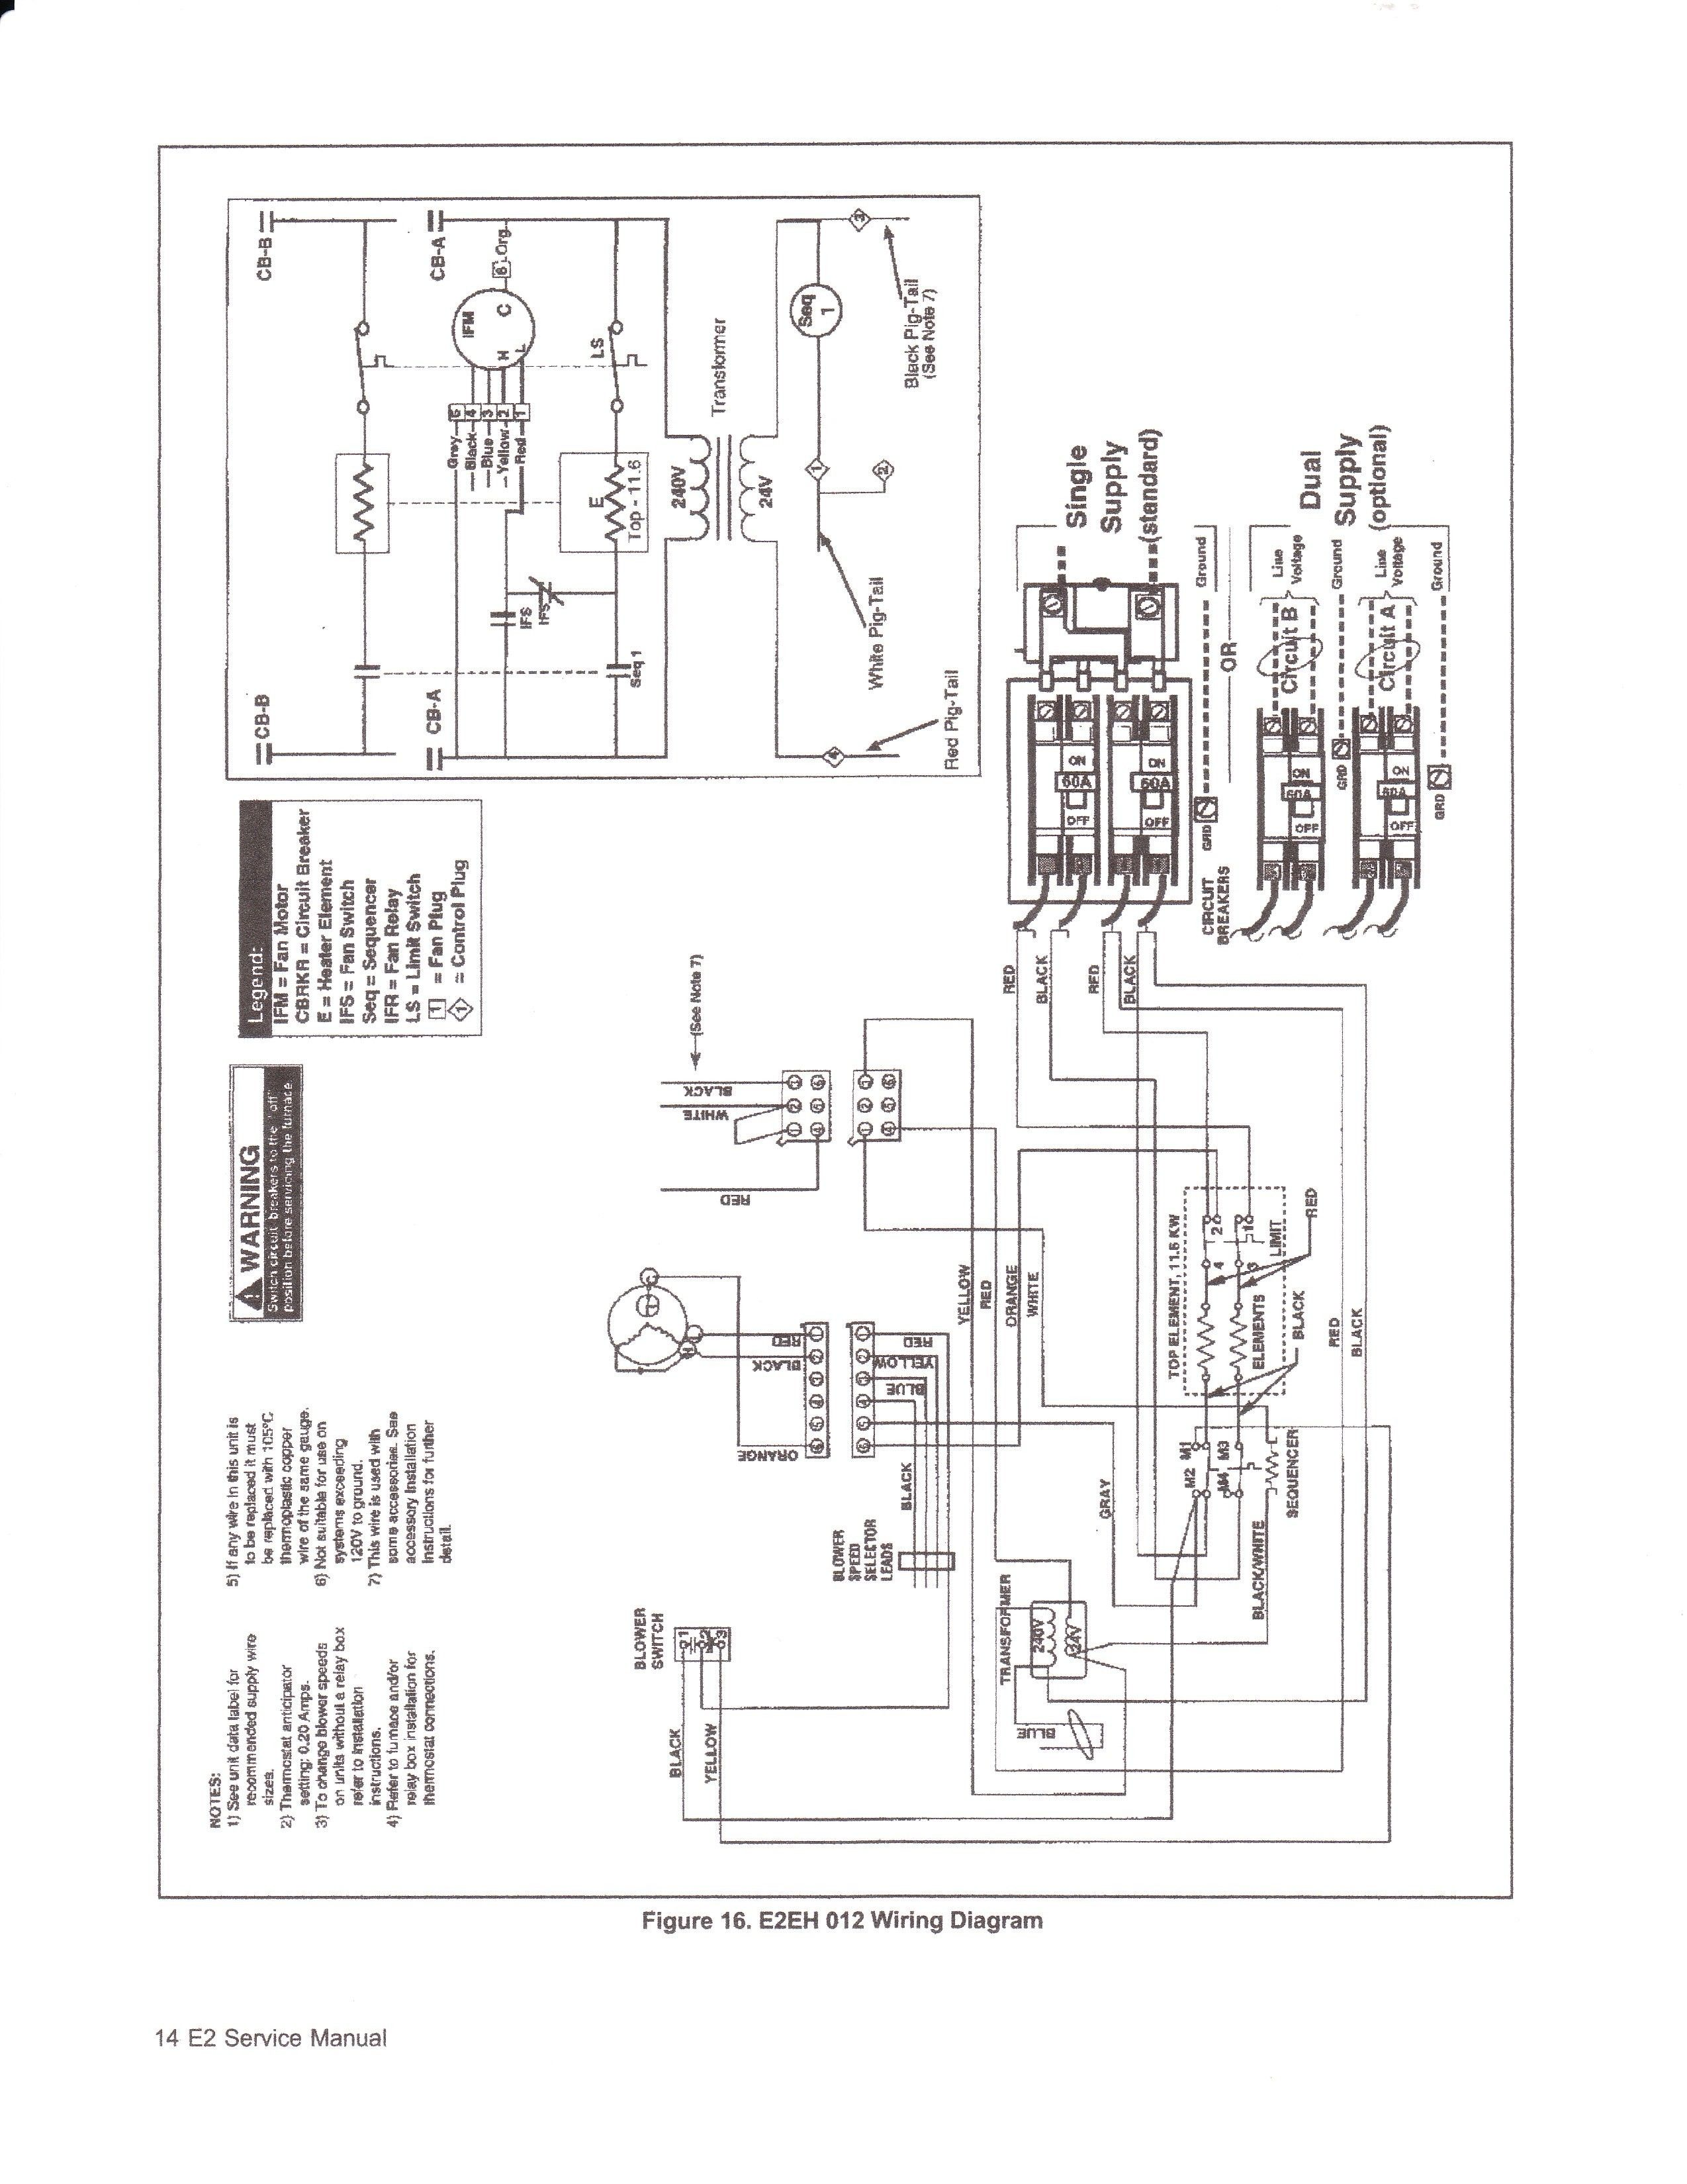 32 Wiring Diagram For Electric Furnace - bookingritzcarlton.info | Electric  furnace, Diagram, House wiringPinterest